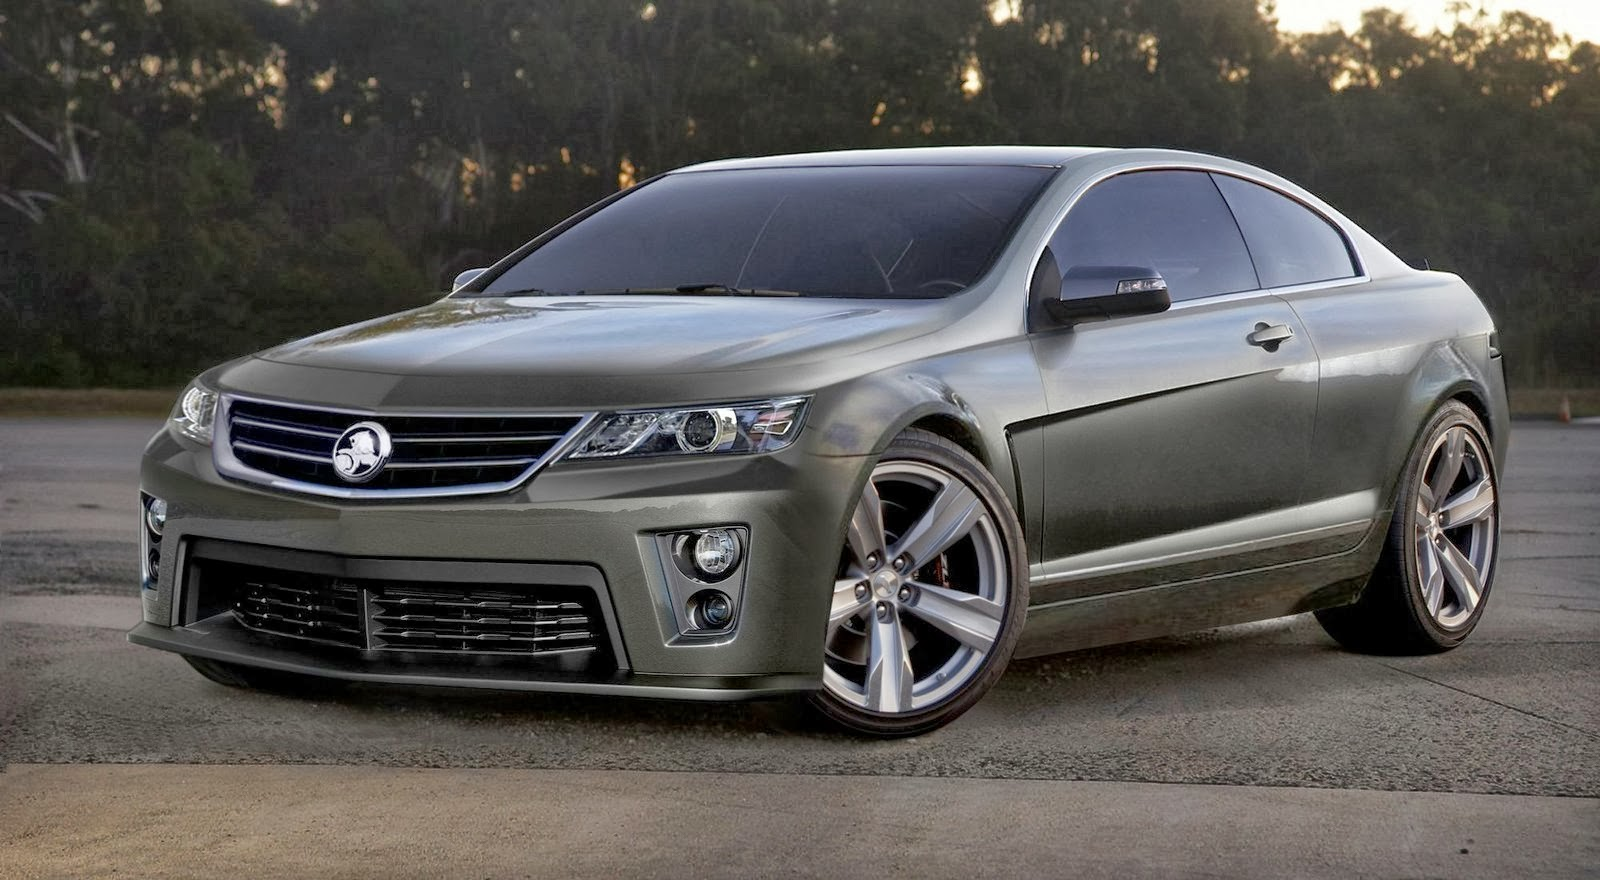 2014 Monte Carlo Ss Release Date.html | Car Review, Specs ...